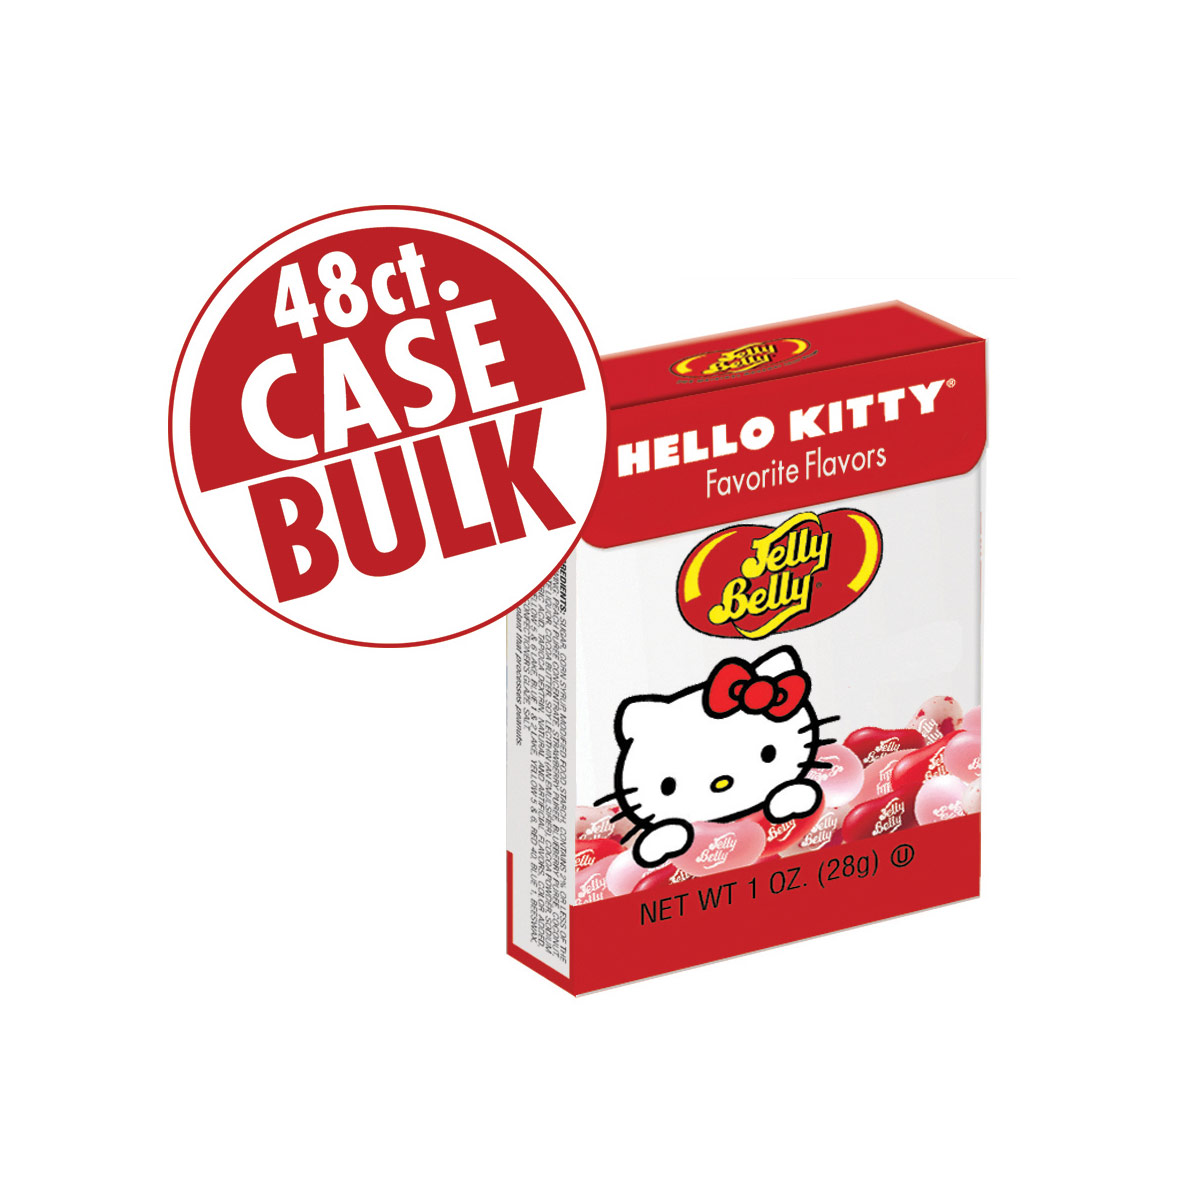 Hello Kitty<sup>®</sup> Favorite Flavors Jelly Beans - 1 oz Flip-Top box - 48-Count Case